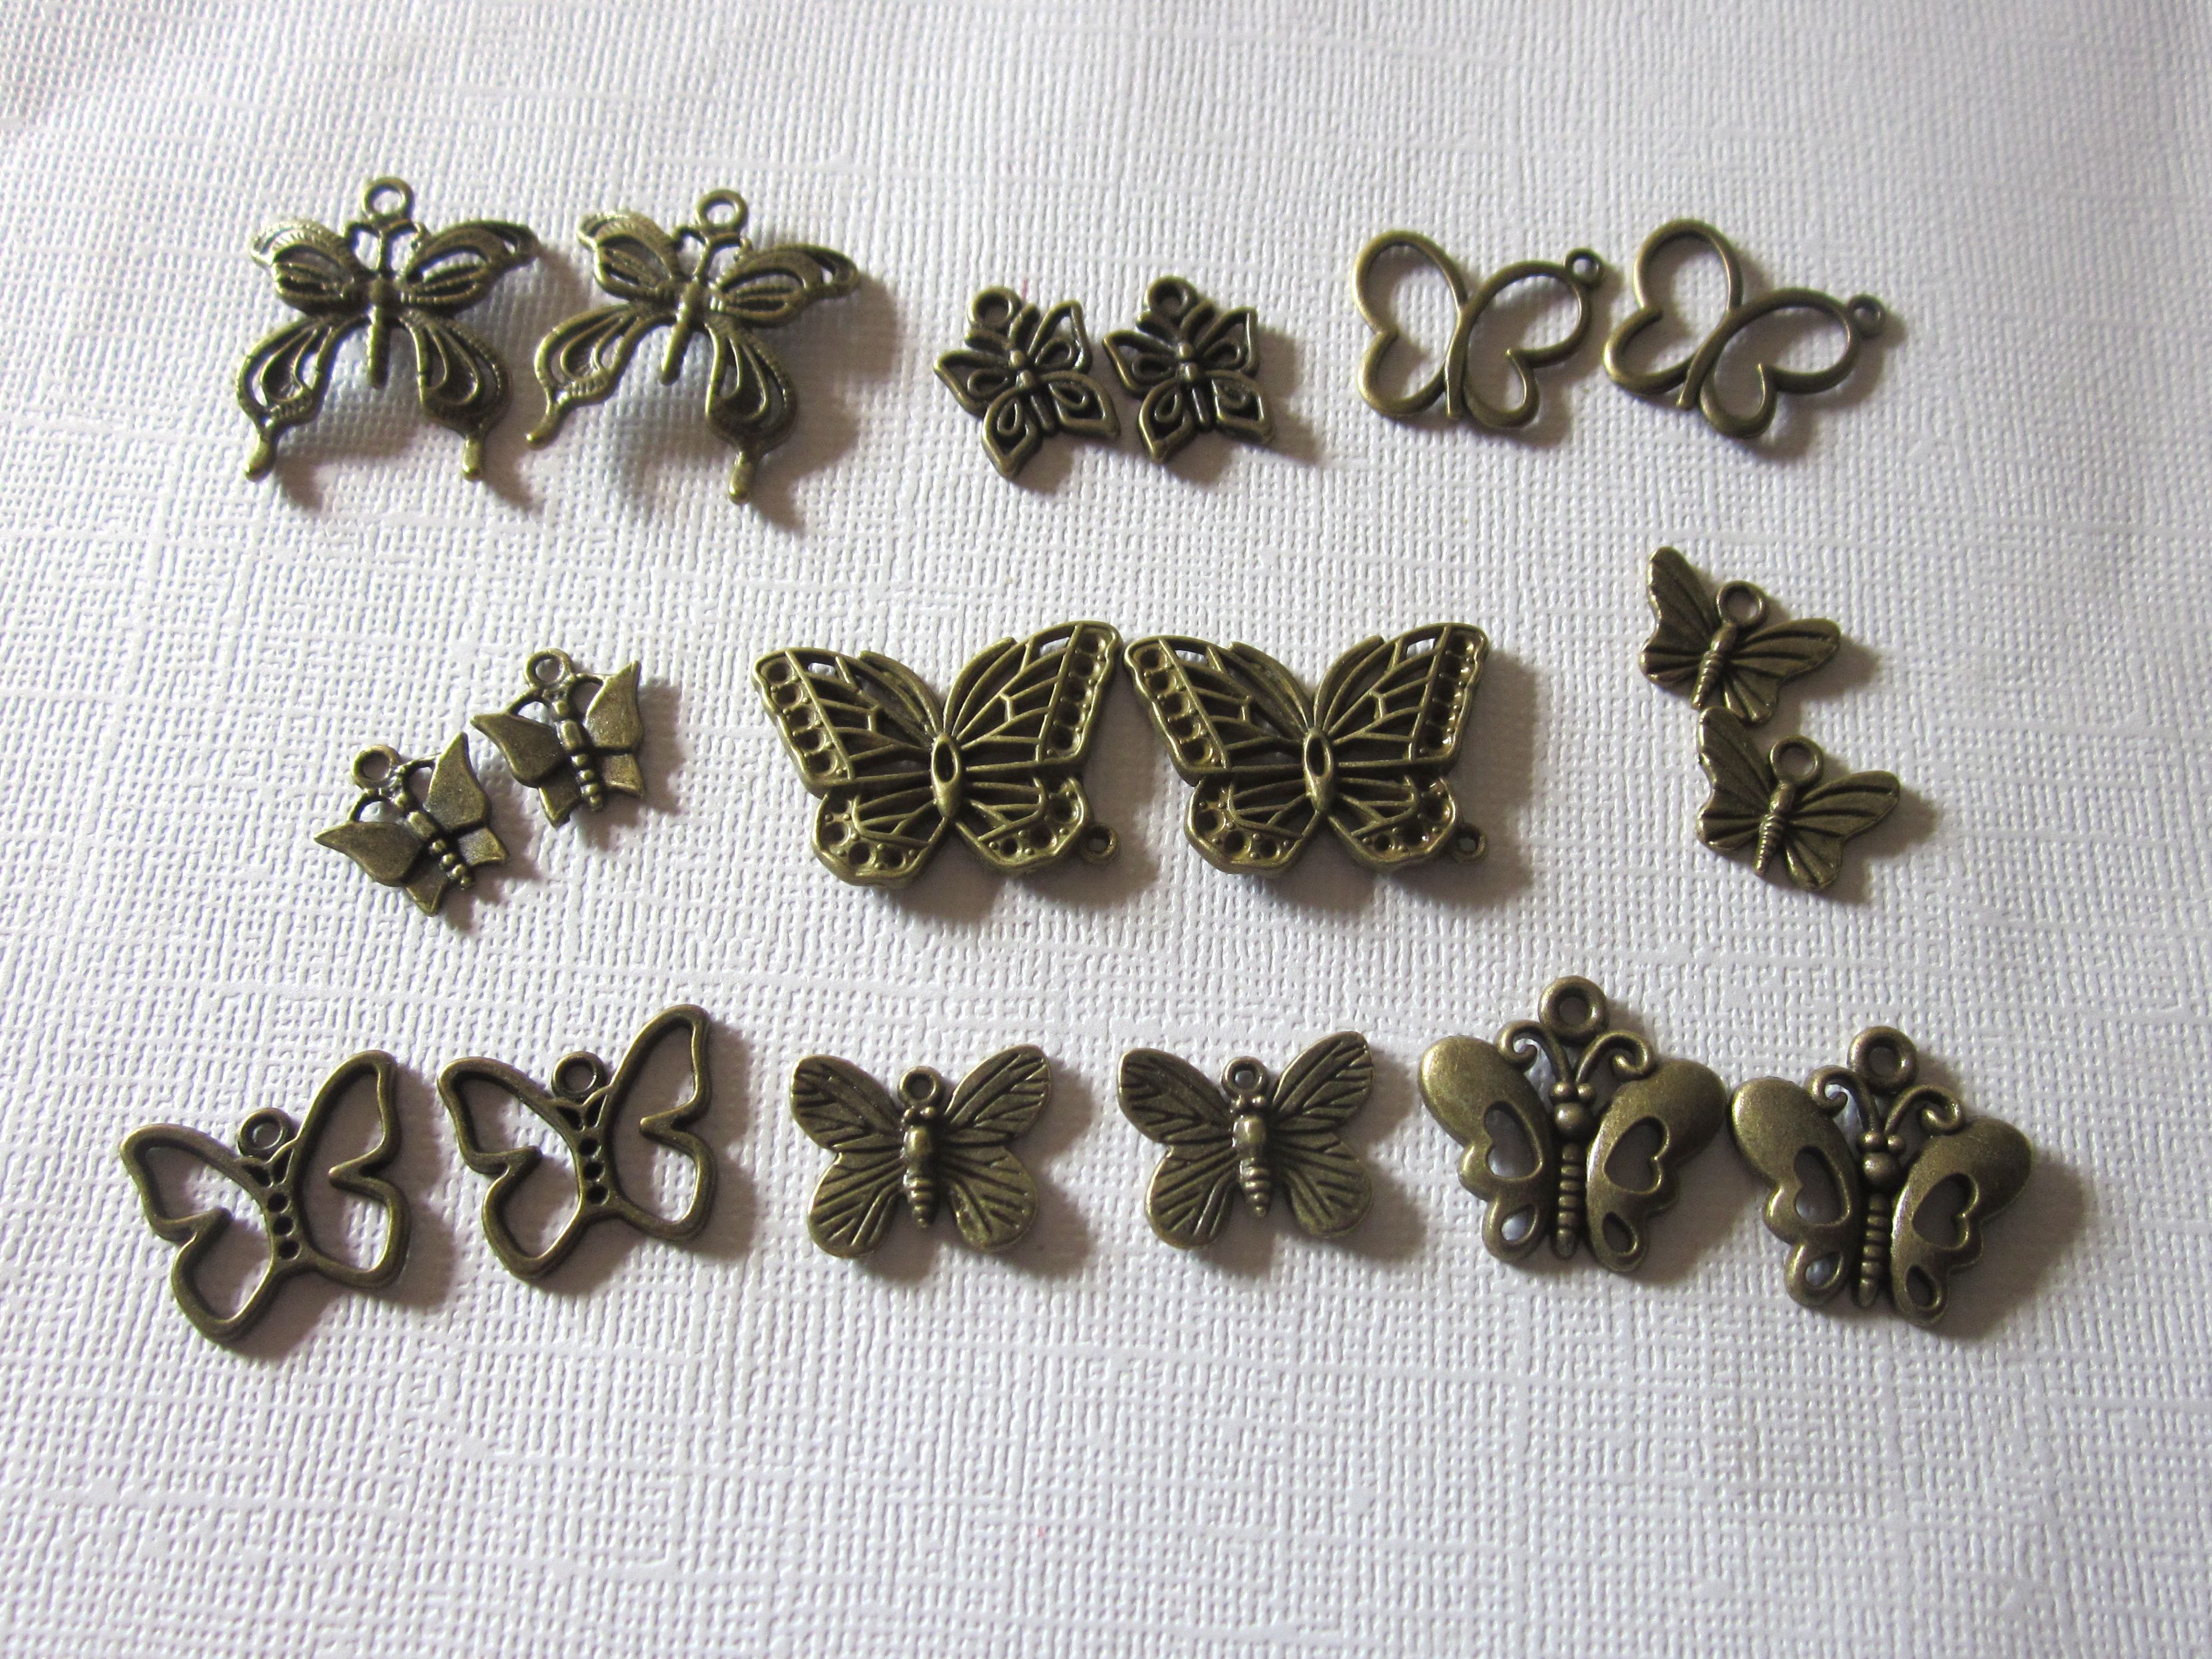 Antique Bronze Mixed Variety Butterfly Charms www.etsy.com/shop/Beads4all